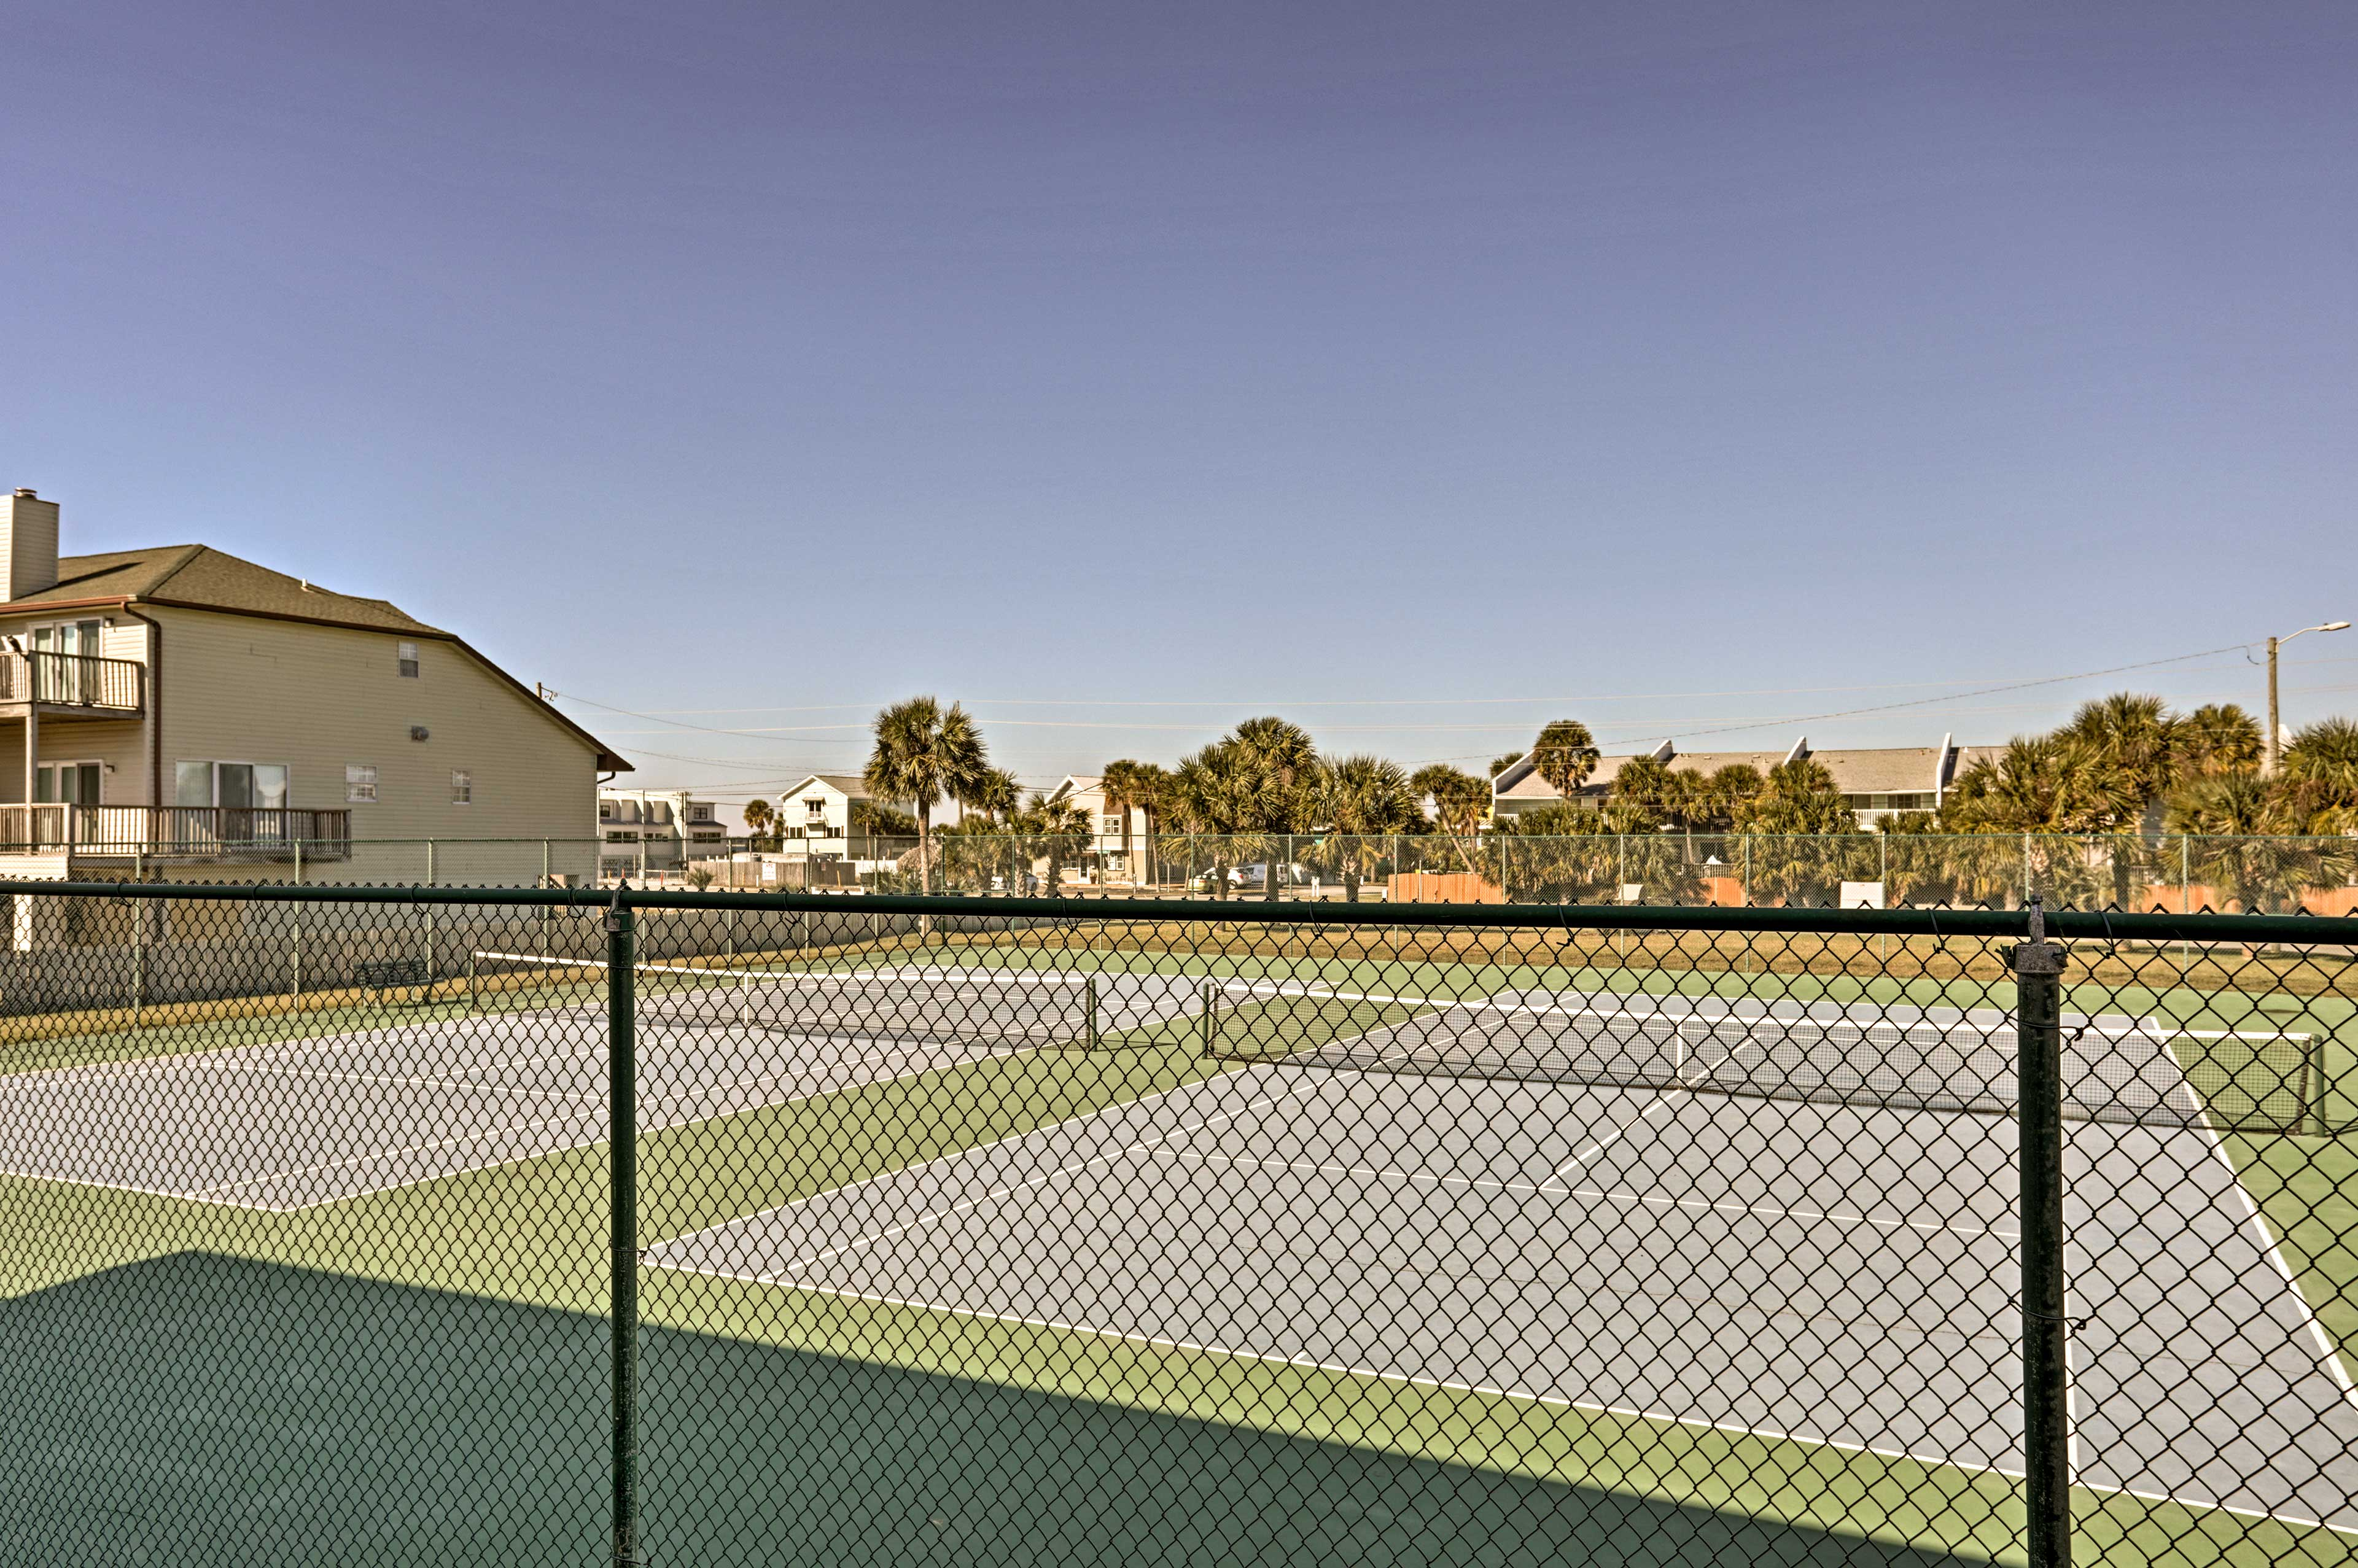 The complex includes a tennis court.